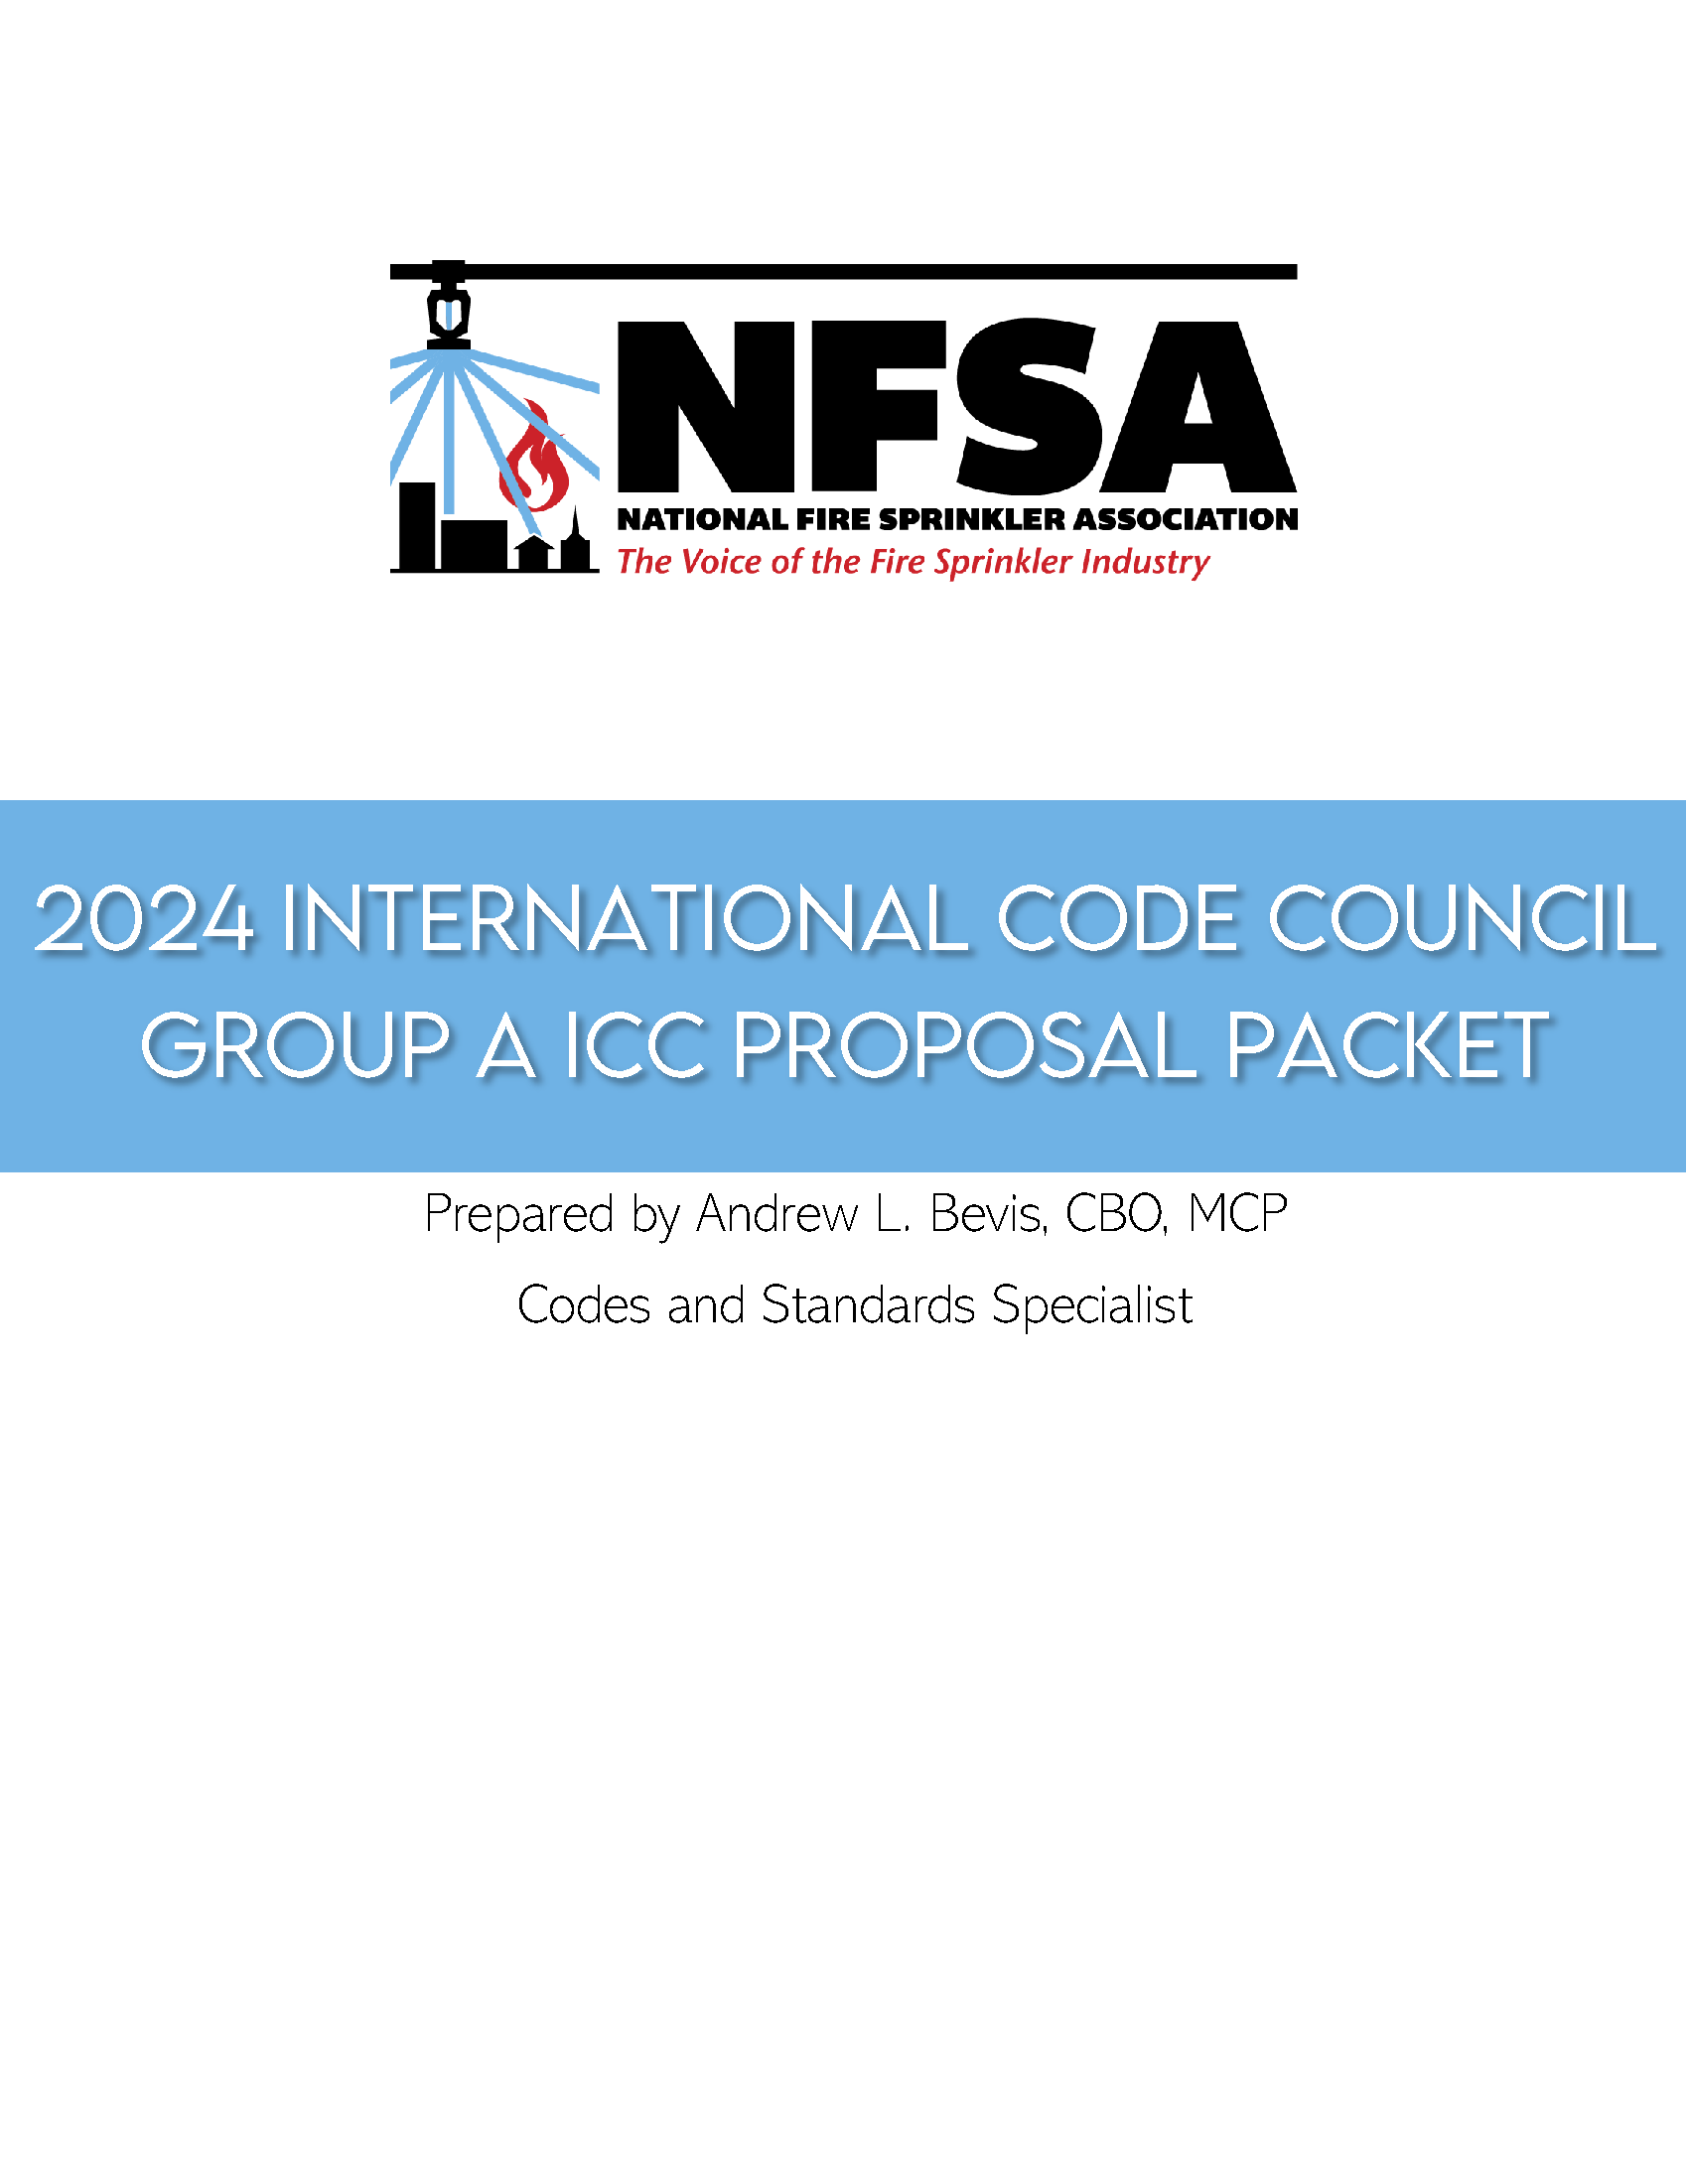 2024 Group A ICC Proposal Packet